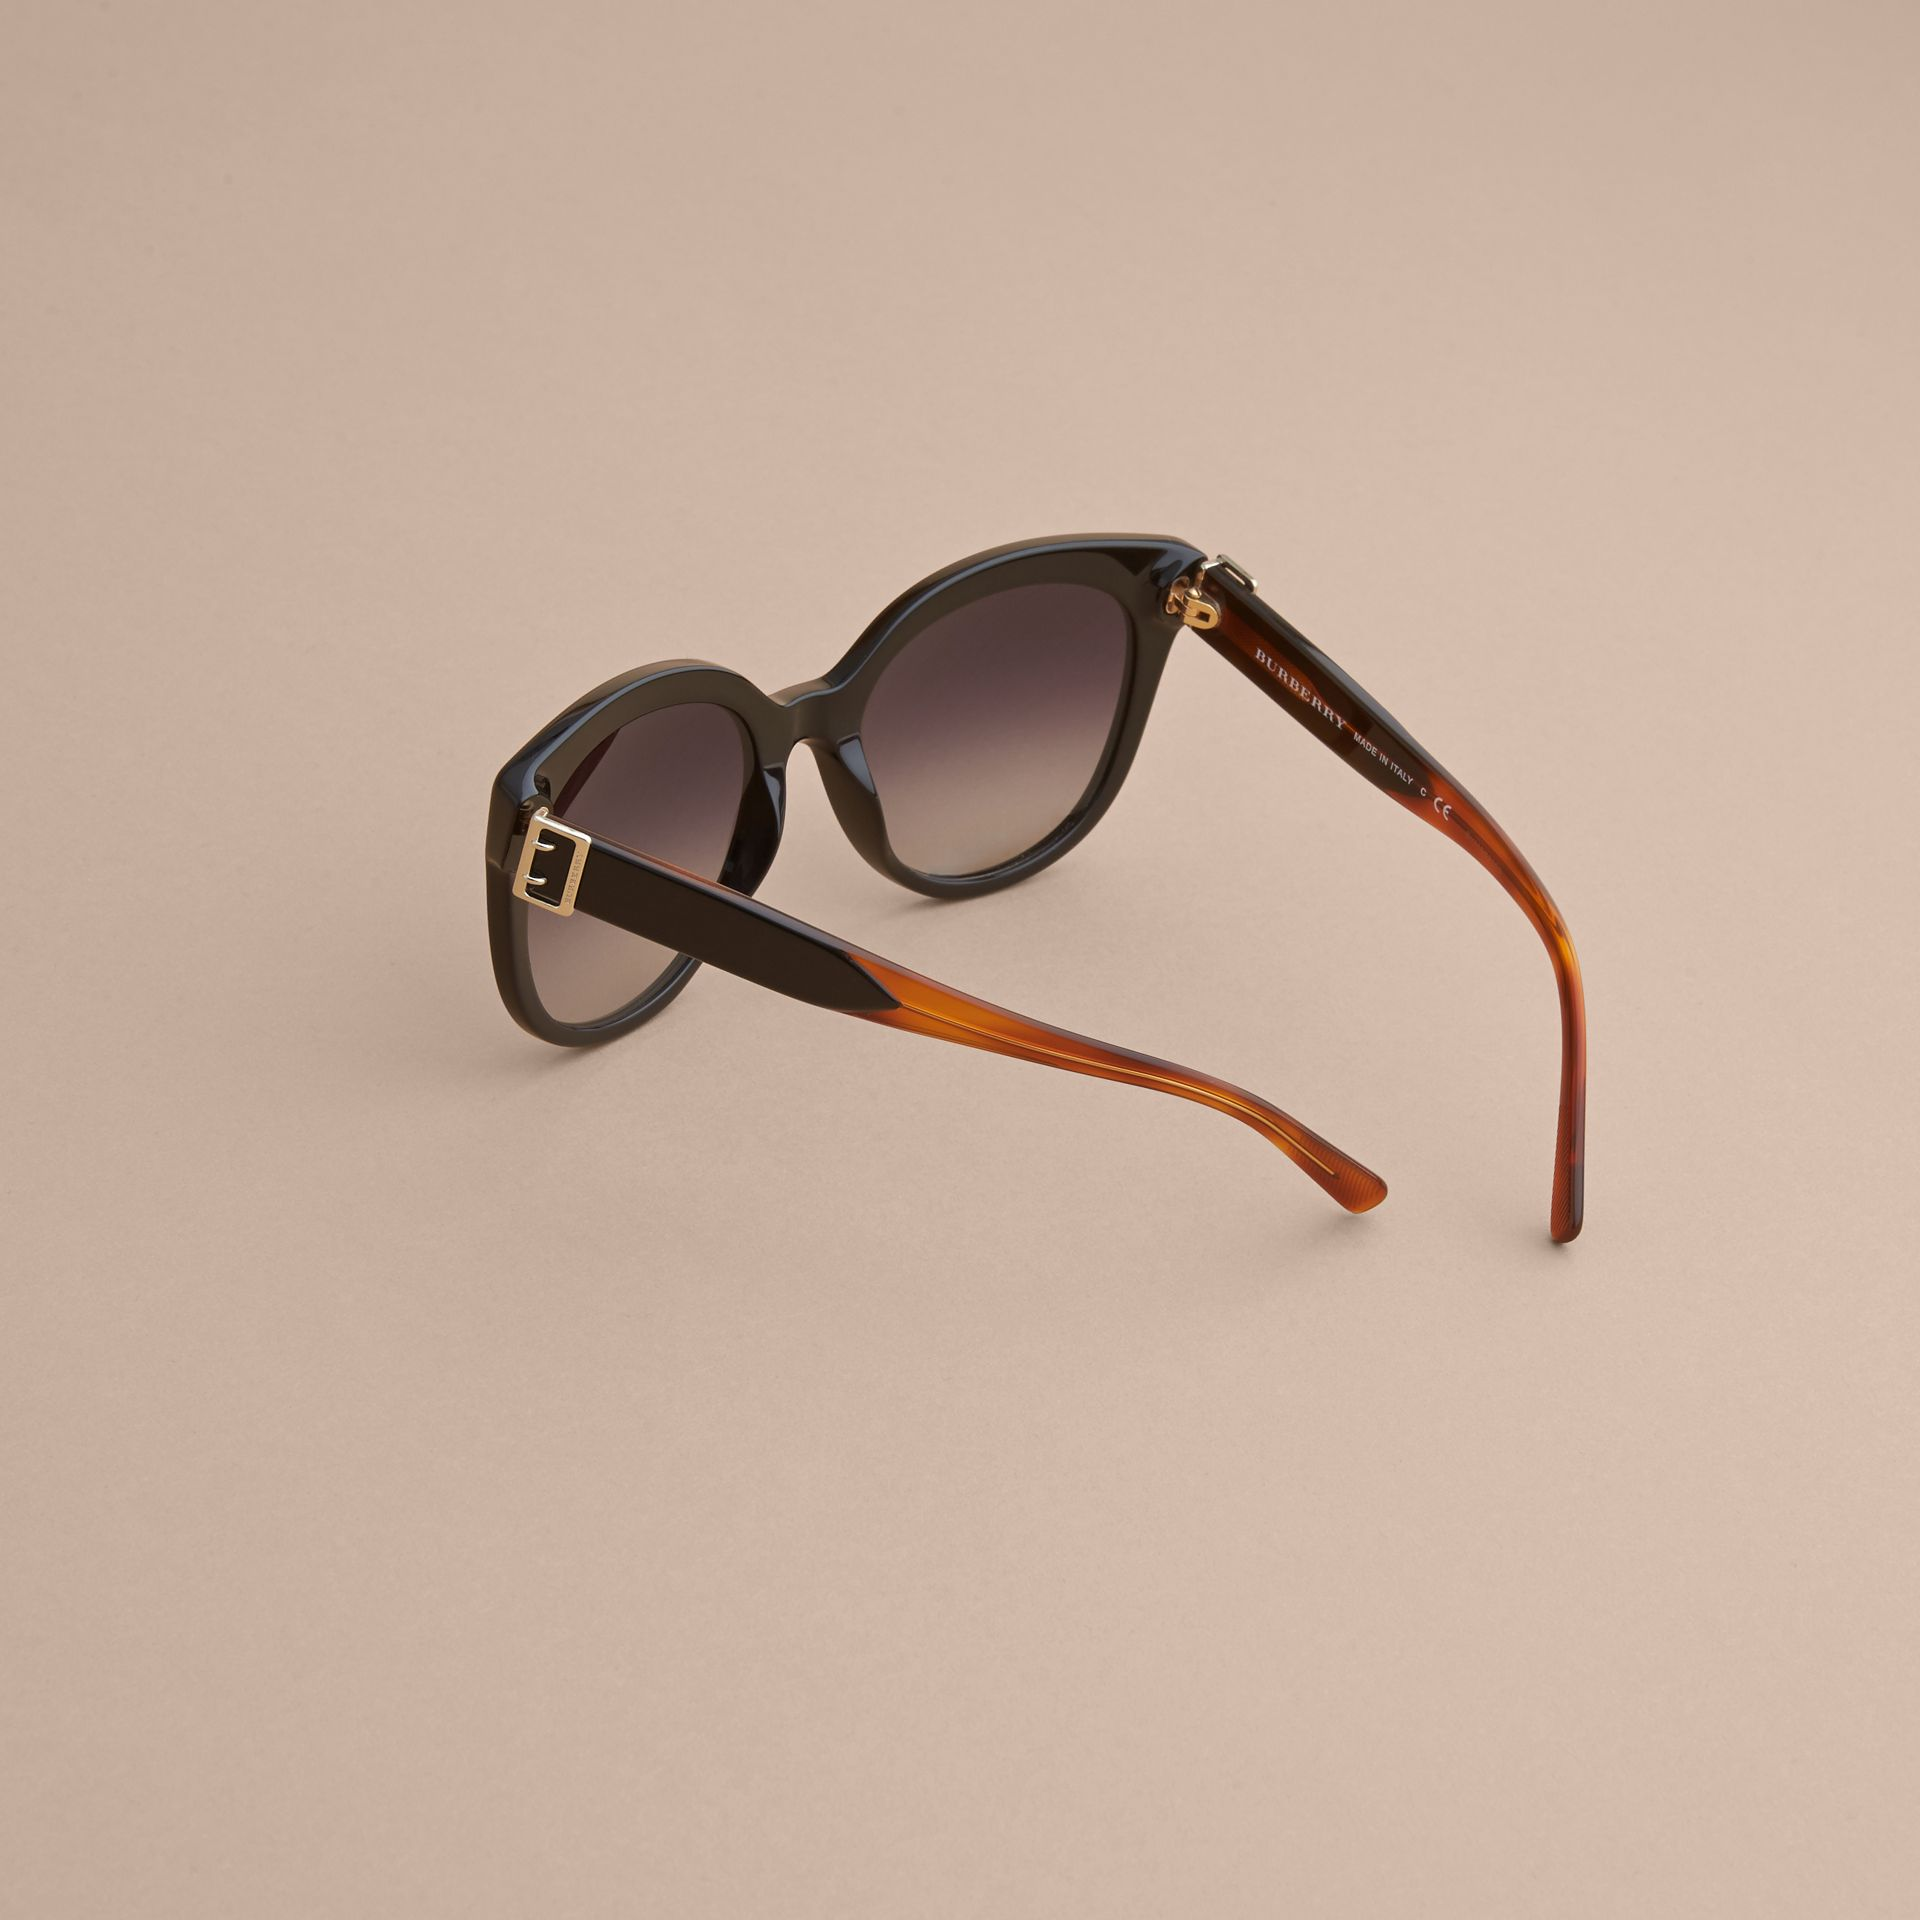 Buckle Detail Cat-eye Frame Sunglasses in Black - Women | Burberry - gallery image 3